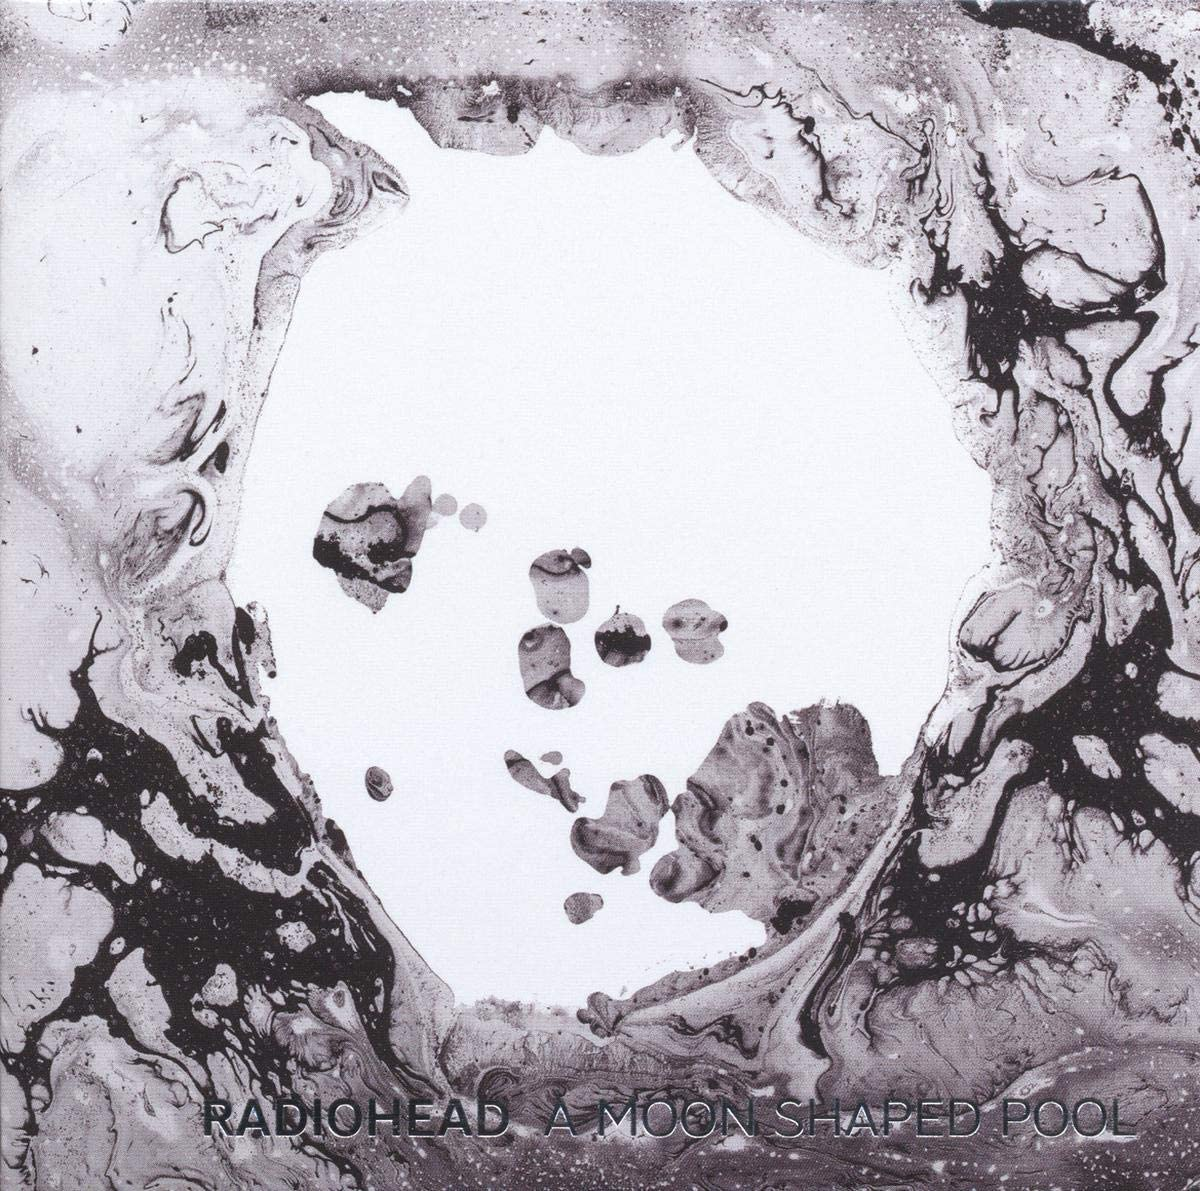 「Radiohead / A Moon Shaped Pool」の画像検索結果